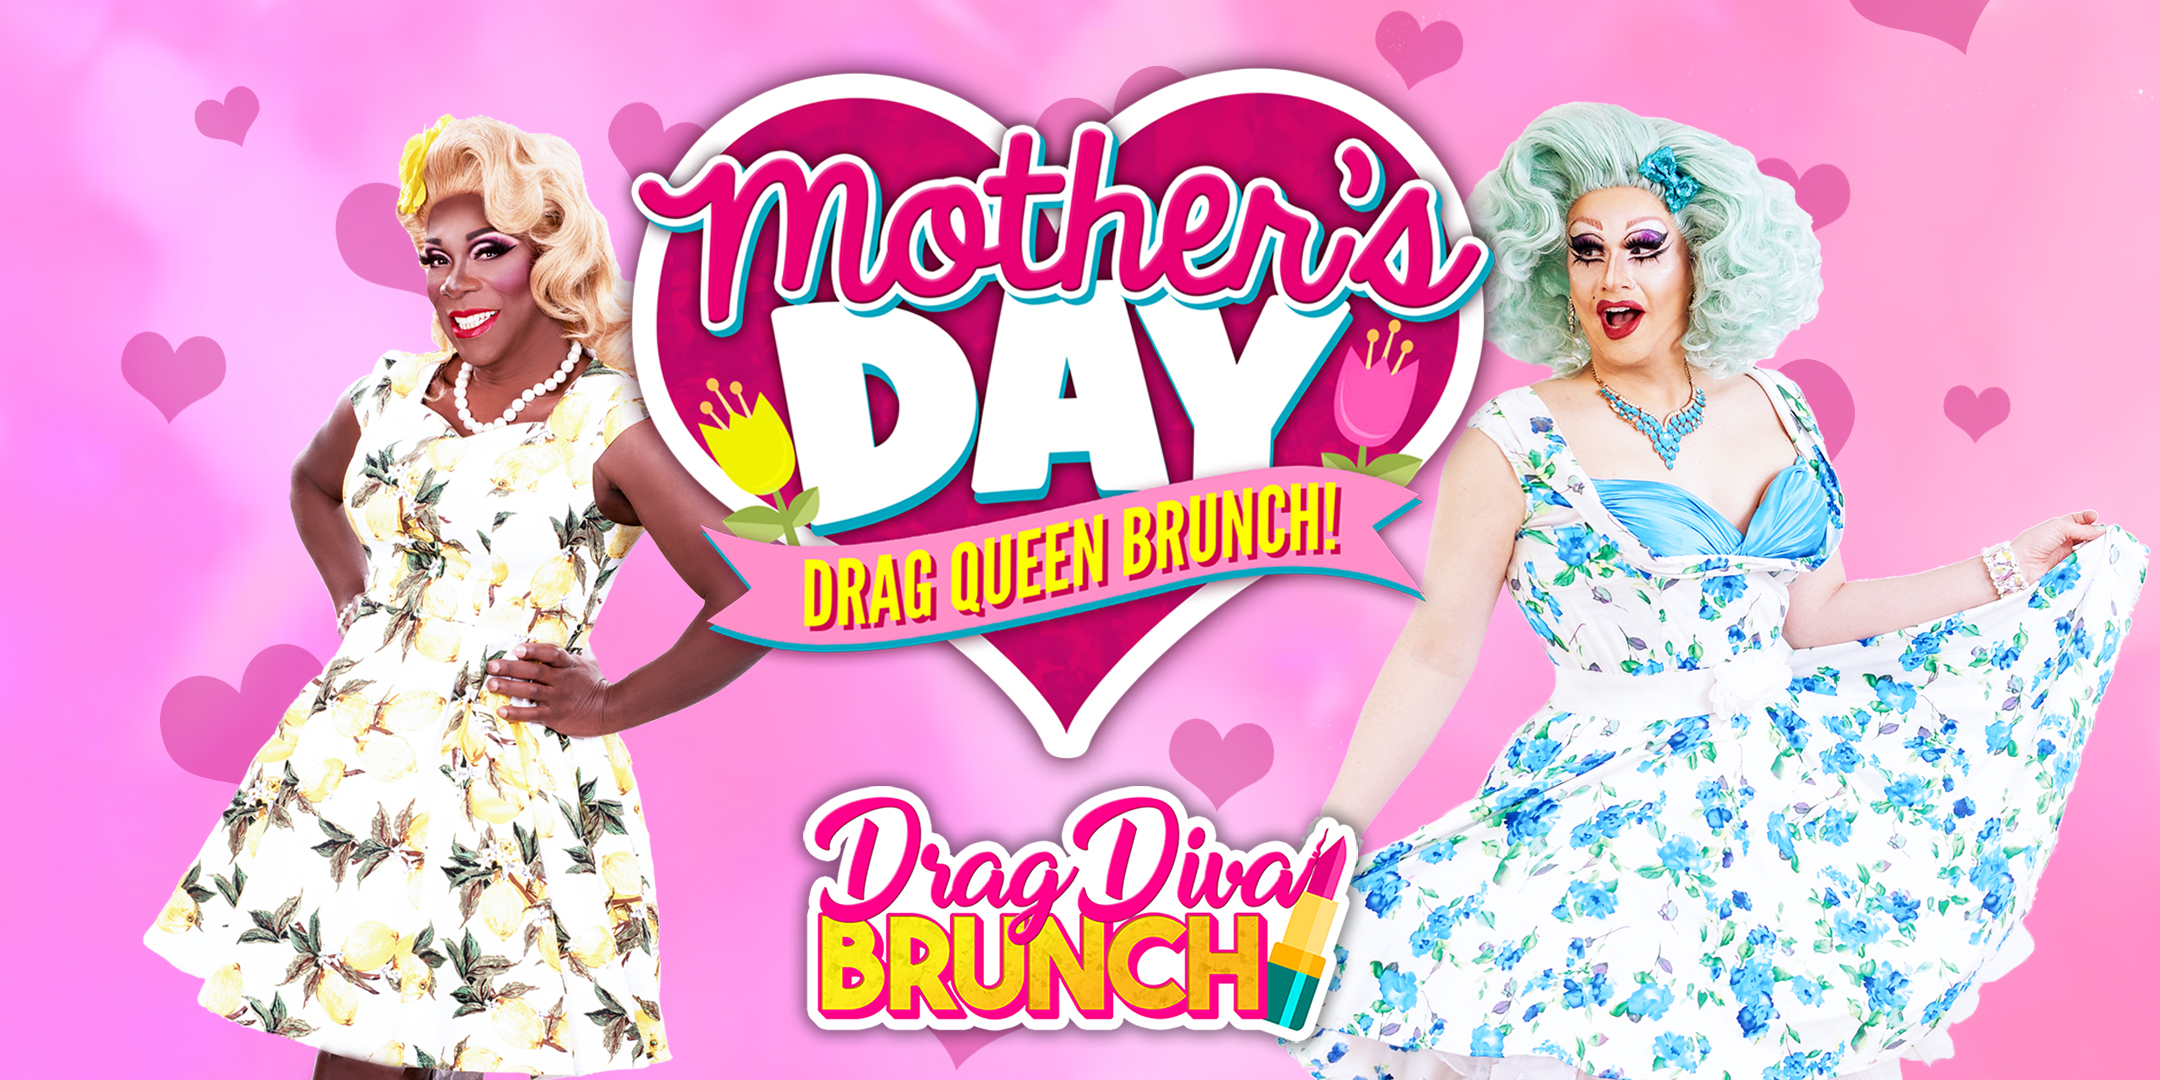 Promo image of Mother's Day Drag Brunch at Legacy Hall